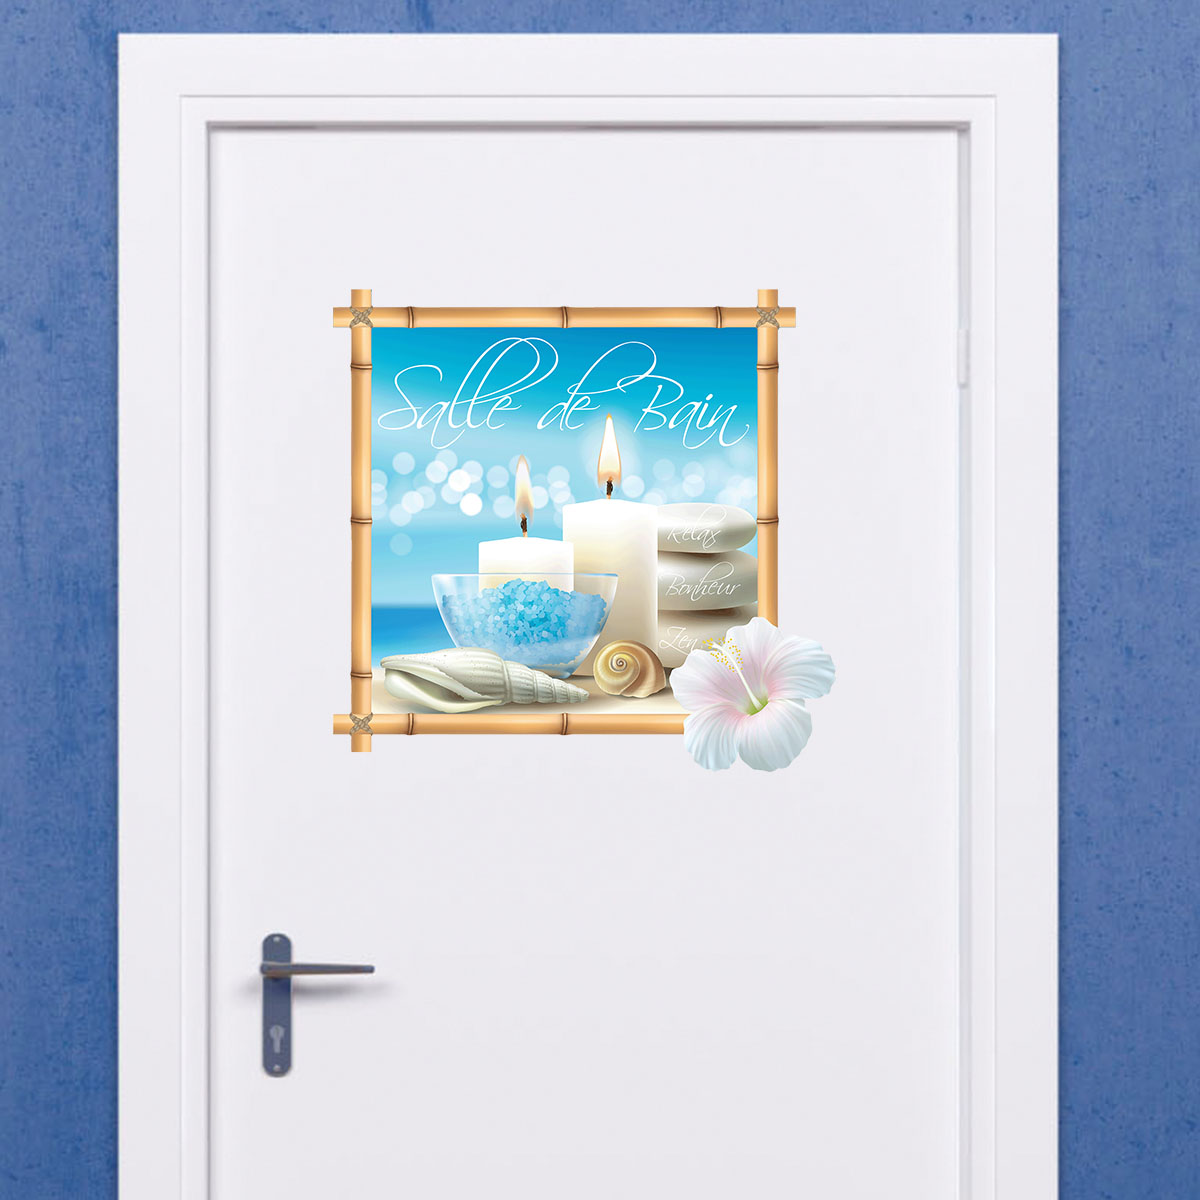 Sticker porte salle de bain plage zen stickers nature for Stickers porte meuble salle de bain